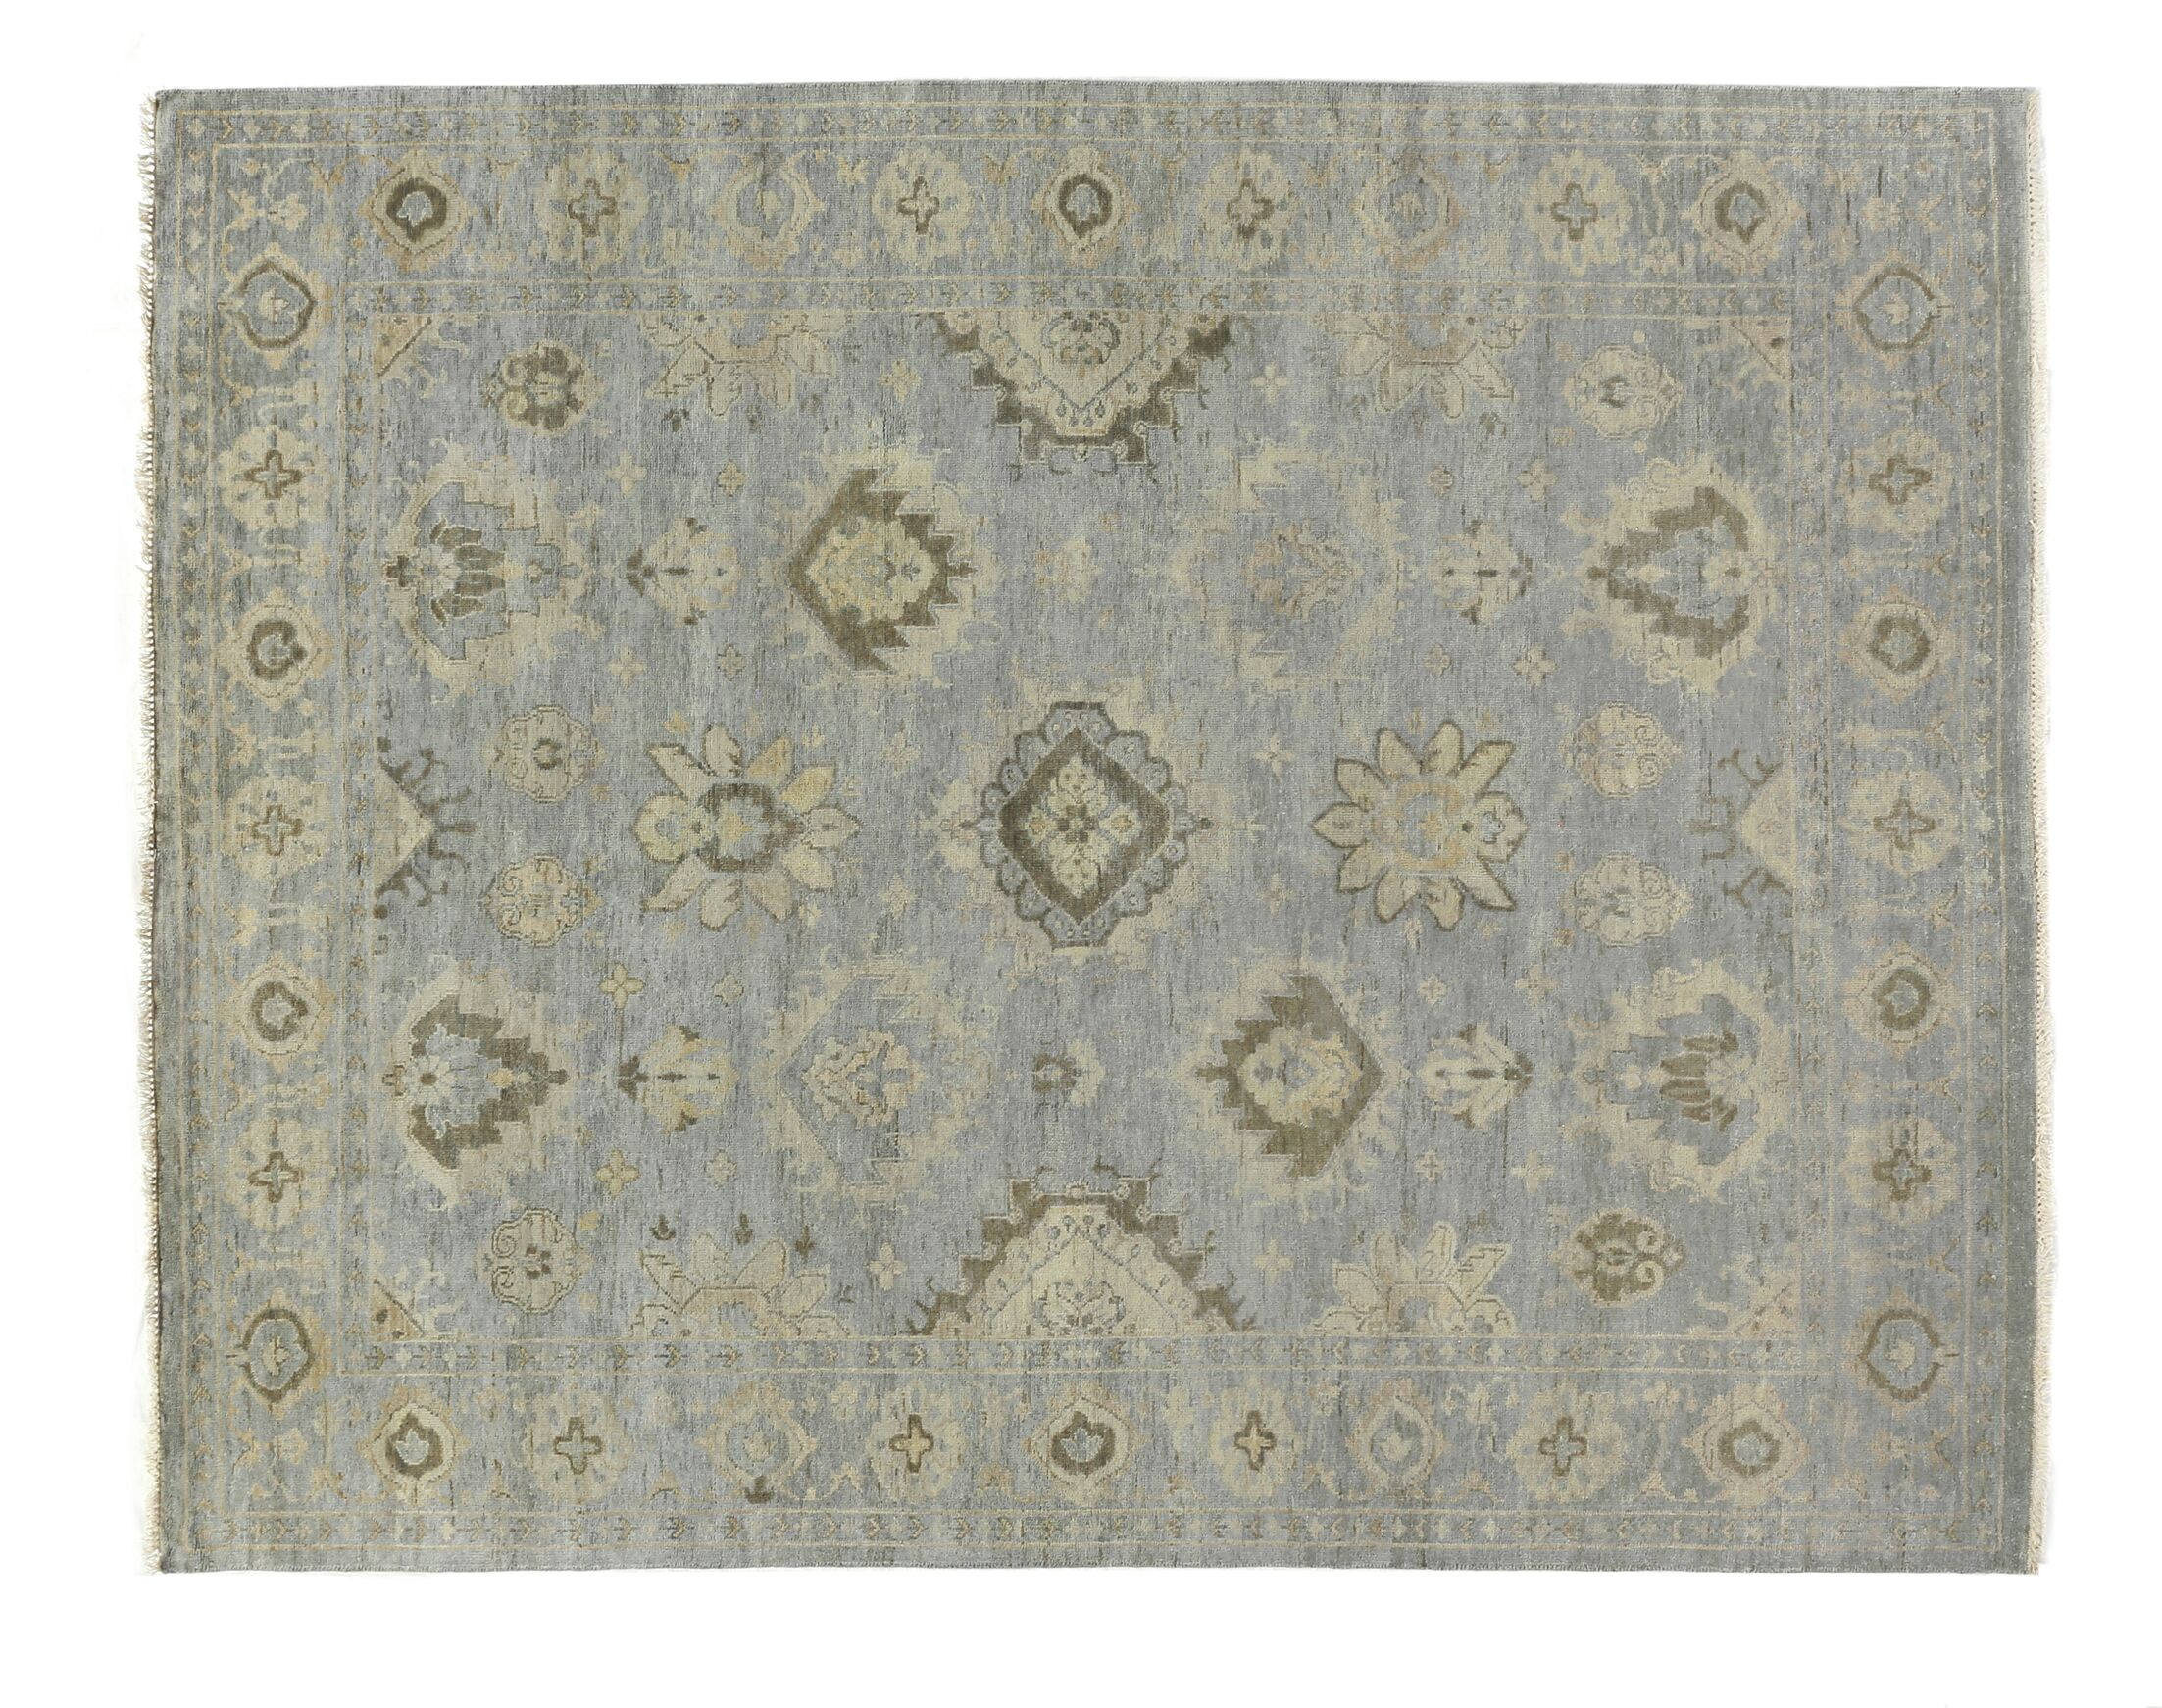 Oushak Hand-Knotted Wool Blue/Gray Area Rug Rug Size: Rectangle 14' x 18'